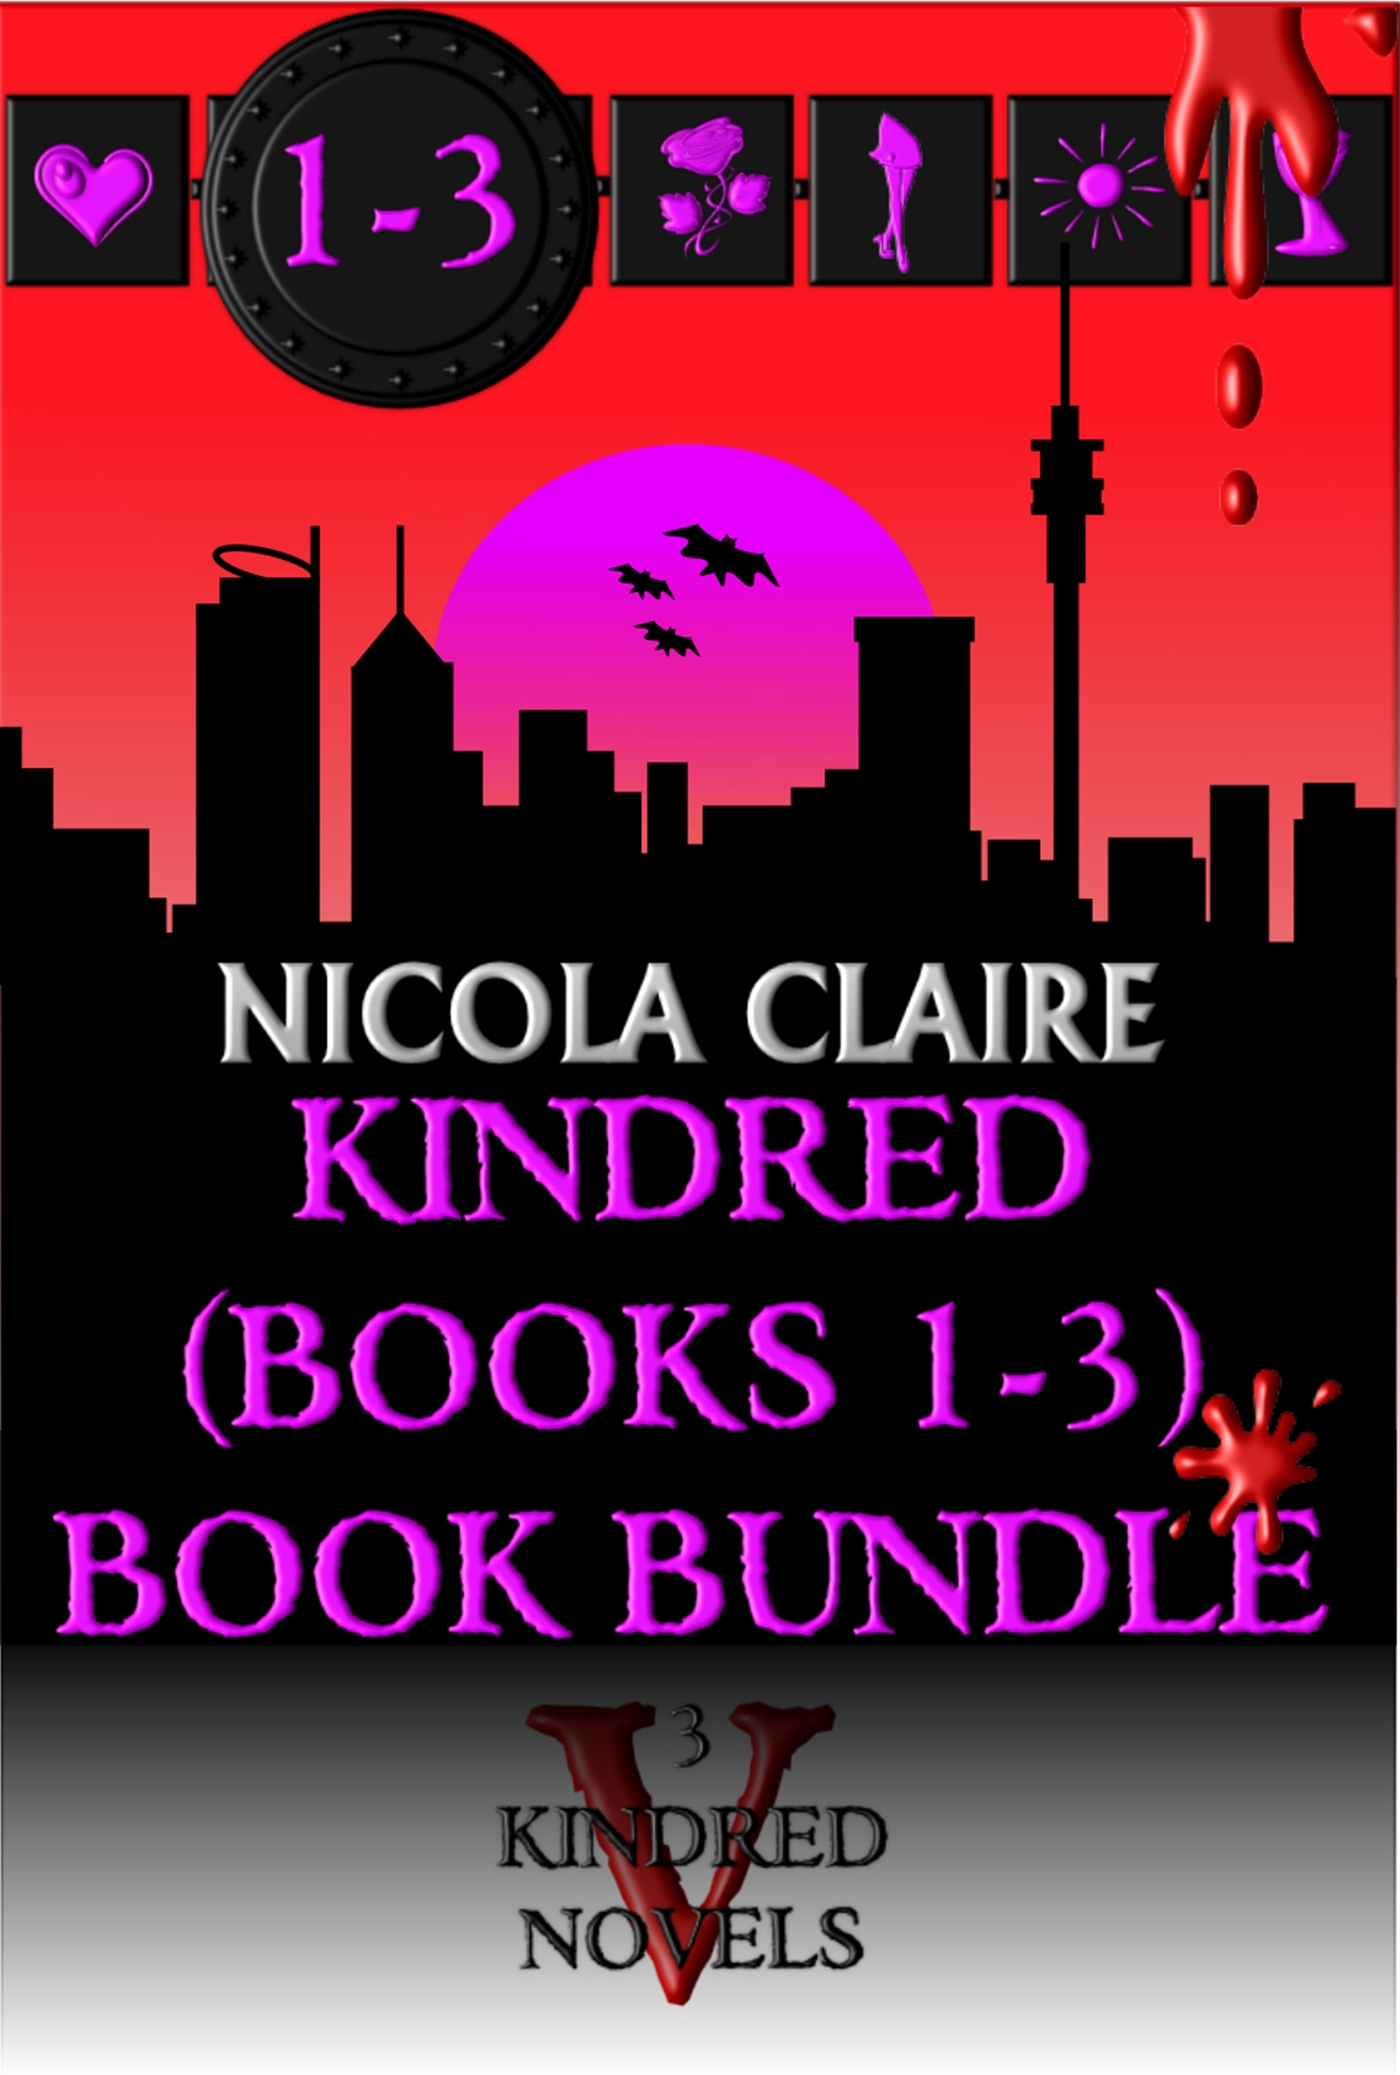 Kindred (Books 1 - 3) Book Bundle